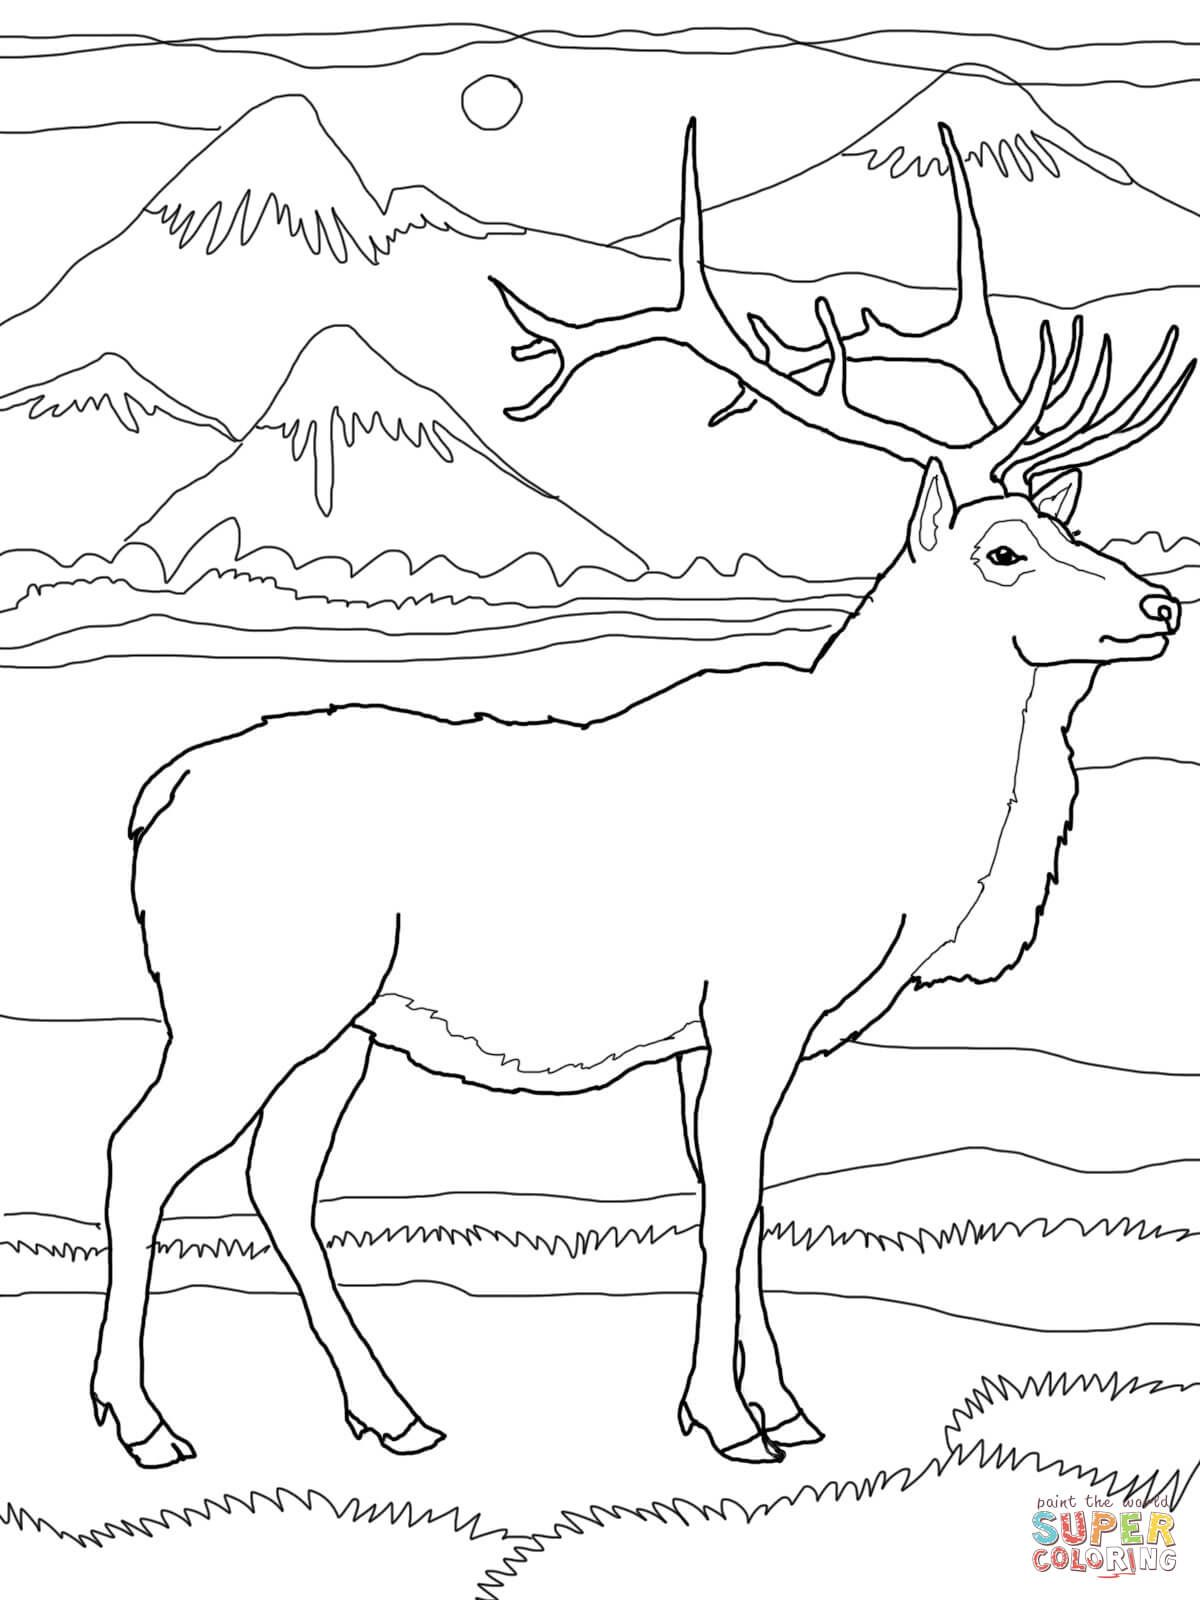 Elk Or Wapiti Coloring Page From Elk Category Select From 28106 Printable Crafts Of Cartoons N Deer Coloring Pages Super Coloring Pages Online Coloring Pages